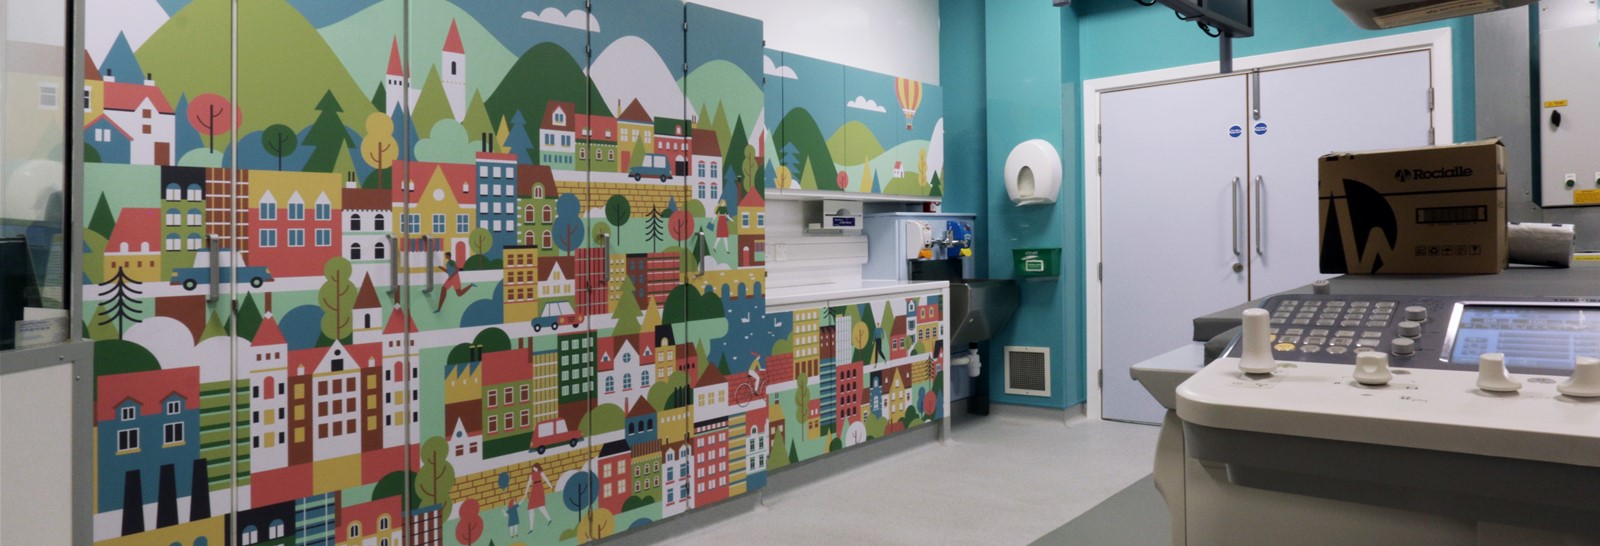 Wall art at Sheffield Children's Hospital by Signs Express